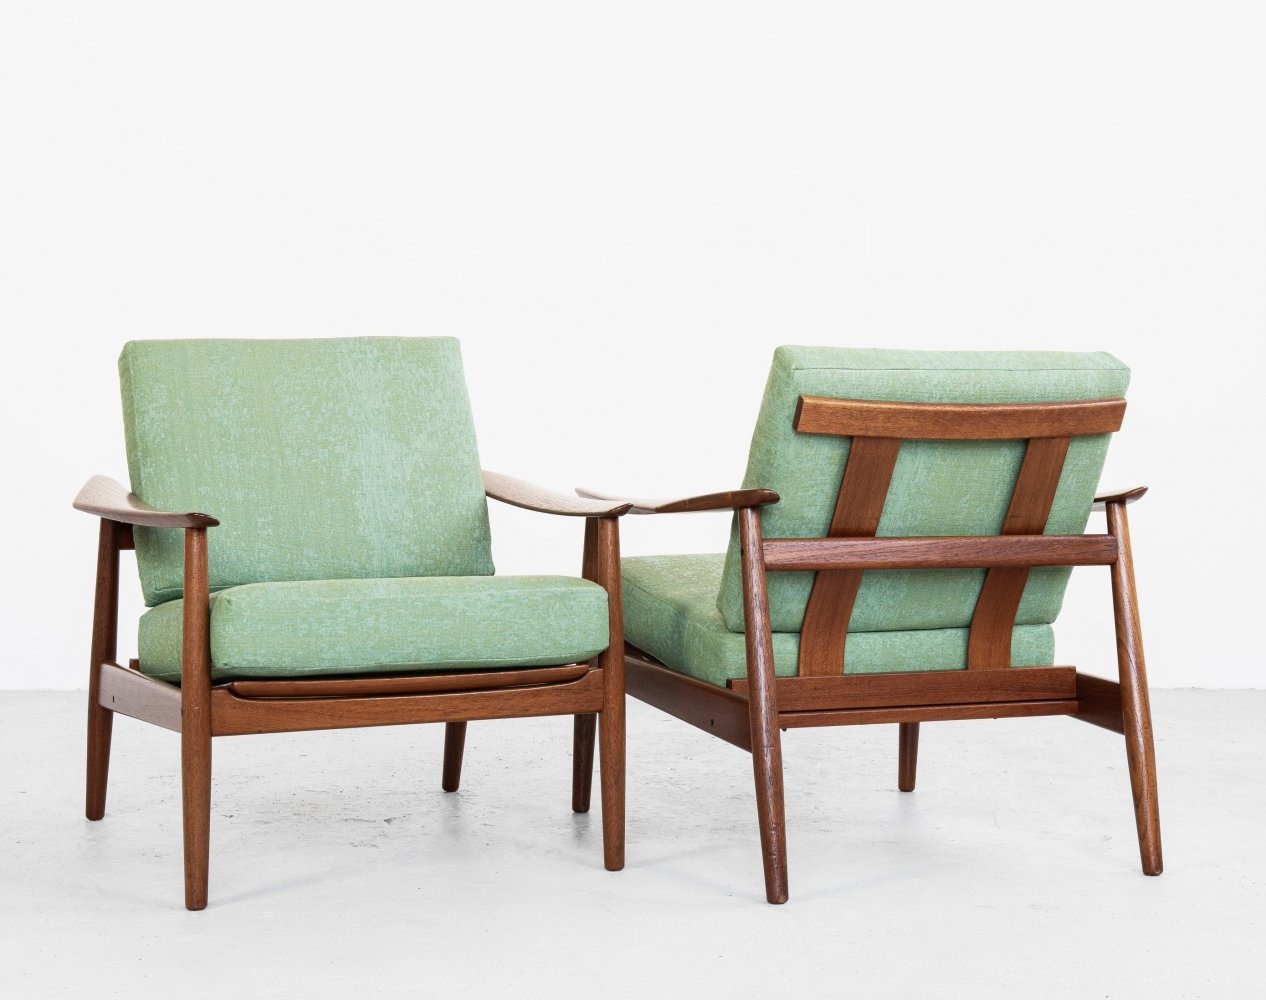 Danish Midcentury pair of easy chairs in teak by Arne Vodder for France & Søn